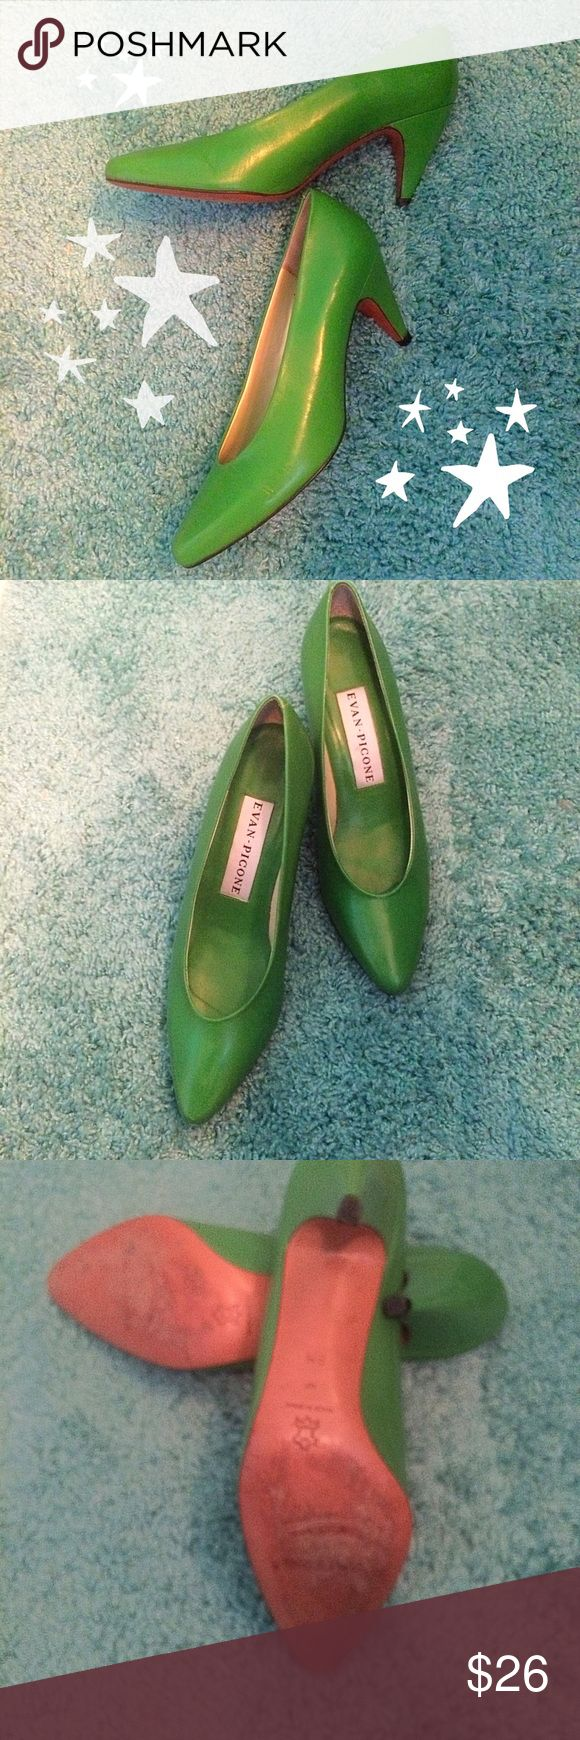 Evan Picone / size 8 / Kelly Green / 3 inch Evan Picone - size 8 - Kelly Green - 3 inch. Please feel free to make an offer - Enjoy discounts on bundles & save $$$ on shipping!  💜💜💜 Shoes Heels